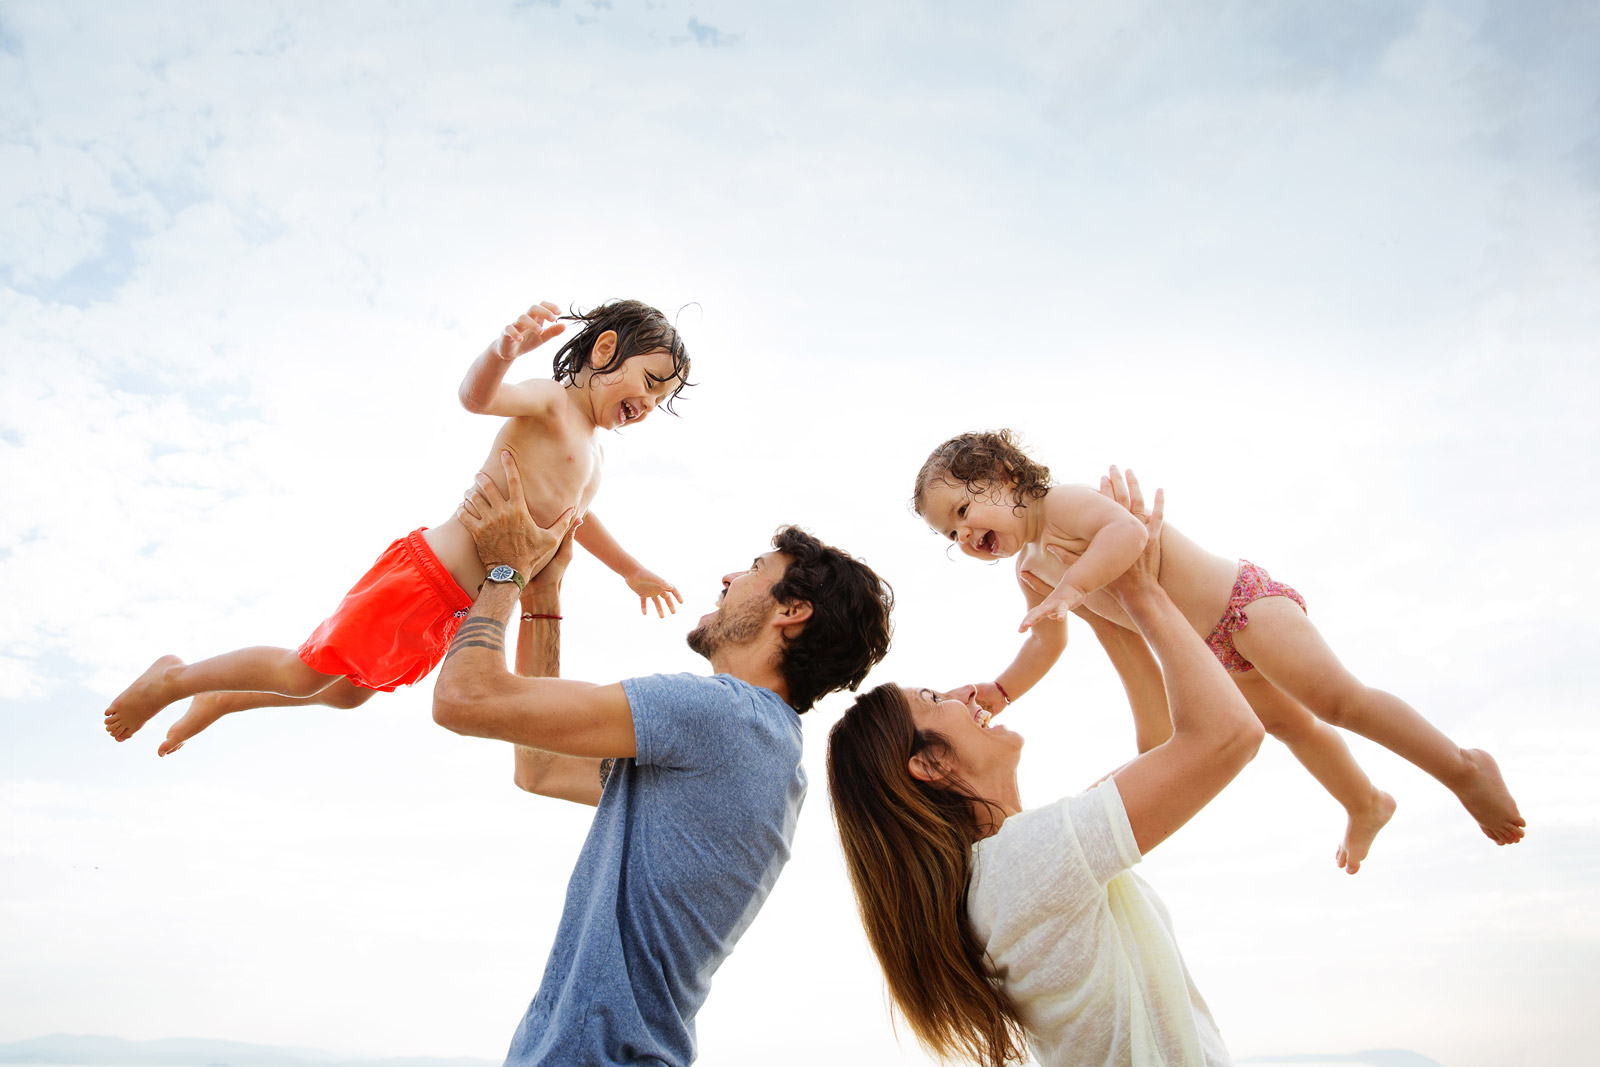 How to joyfully capture photos of parent and child together by Lisa Tichane